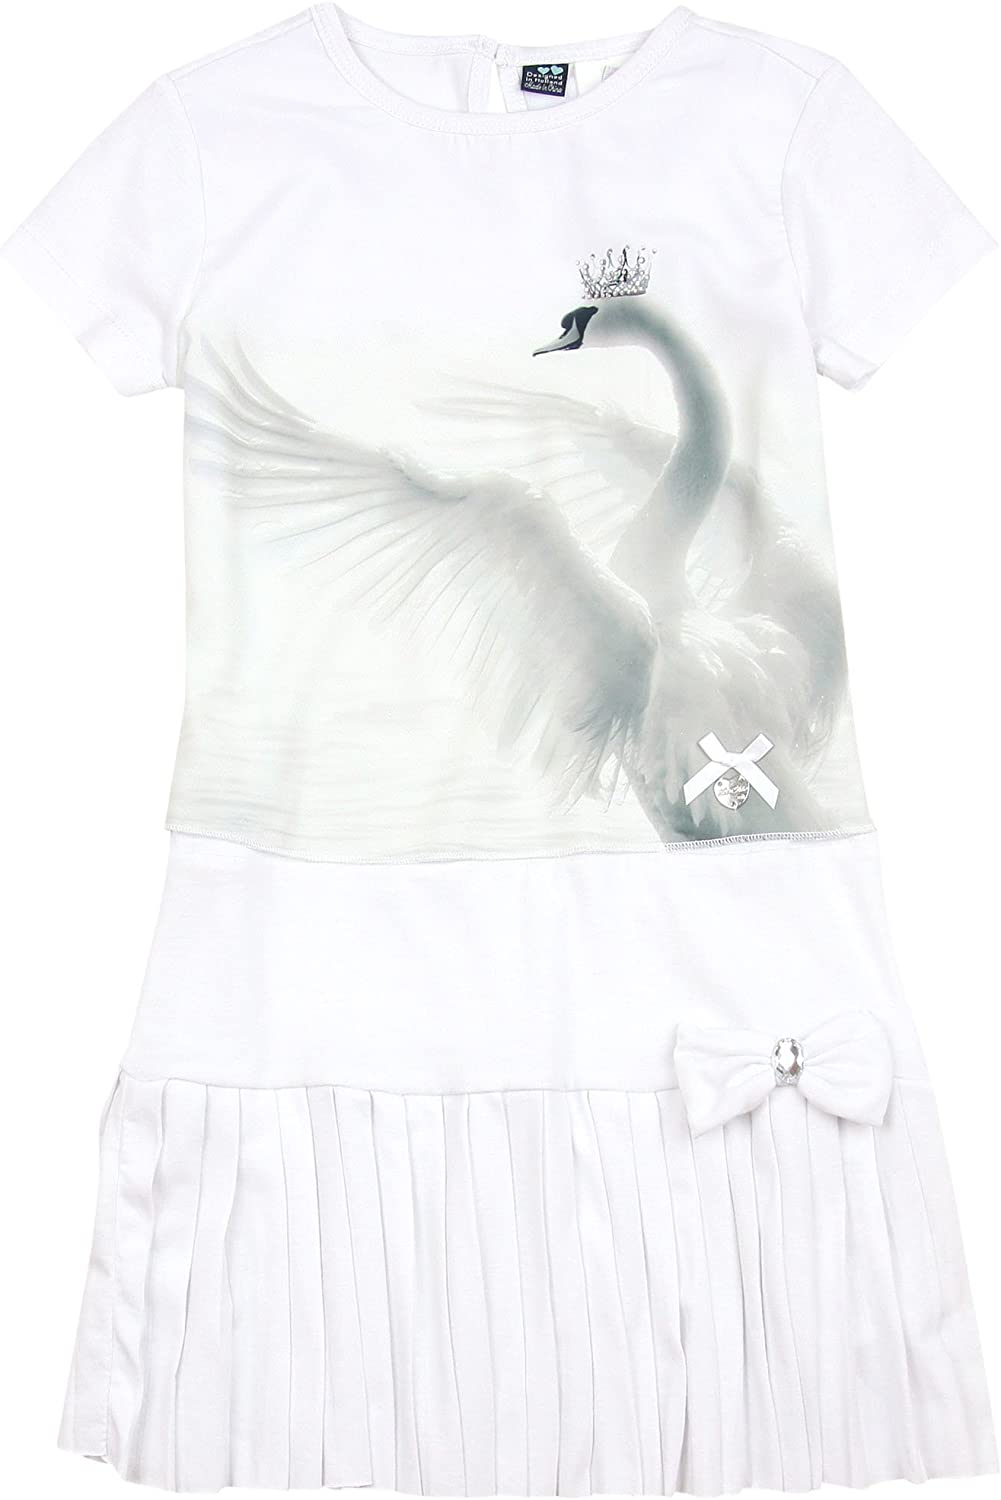 Le Chic Girl's trend rank Dress with Print Sizes Swan 3-12 Inexpensive